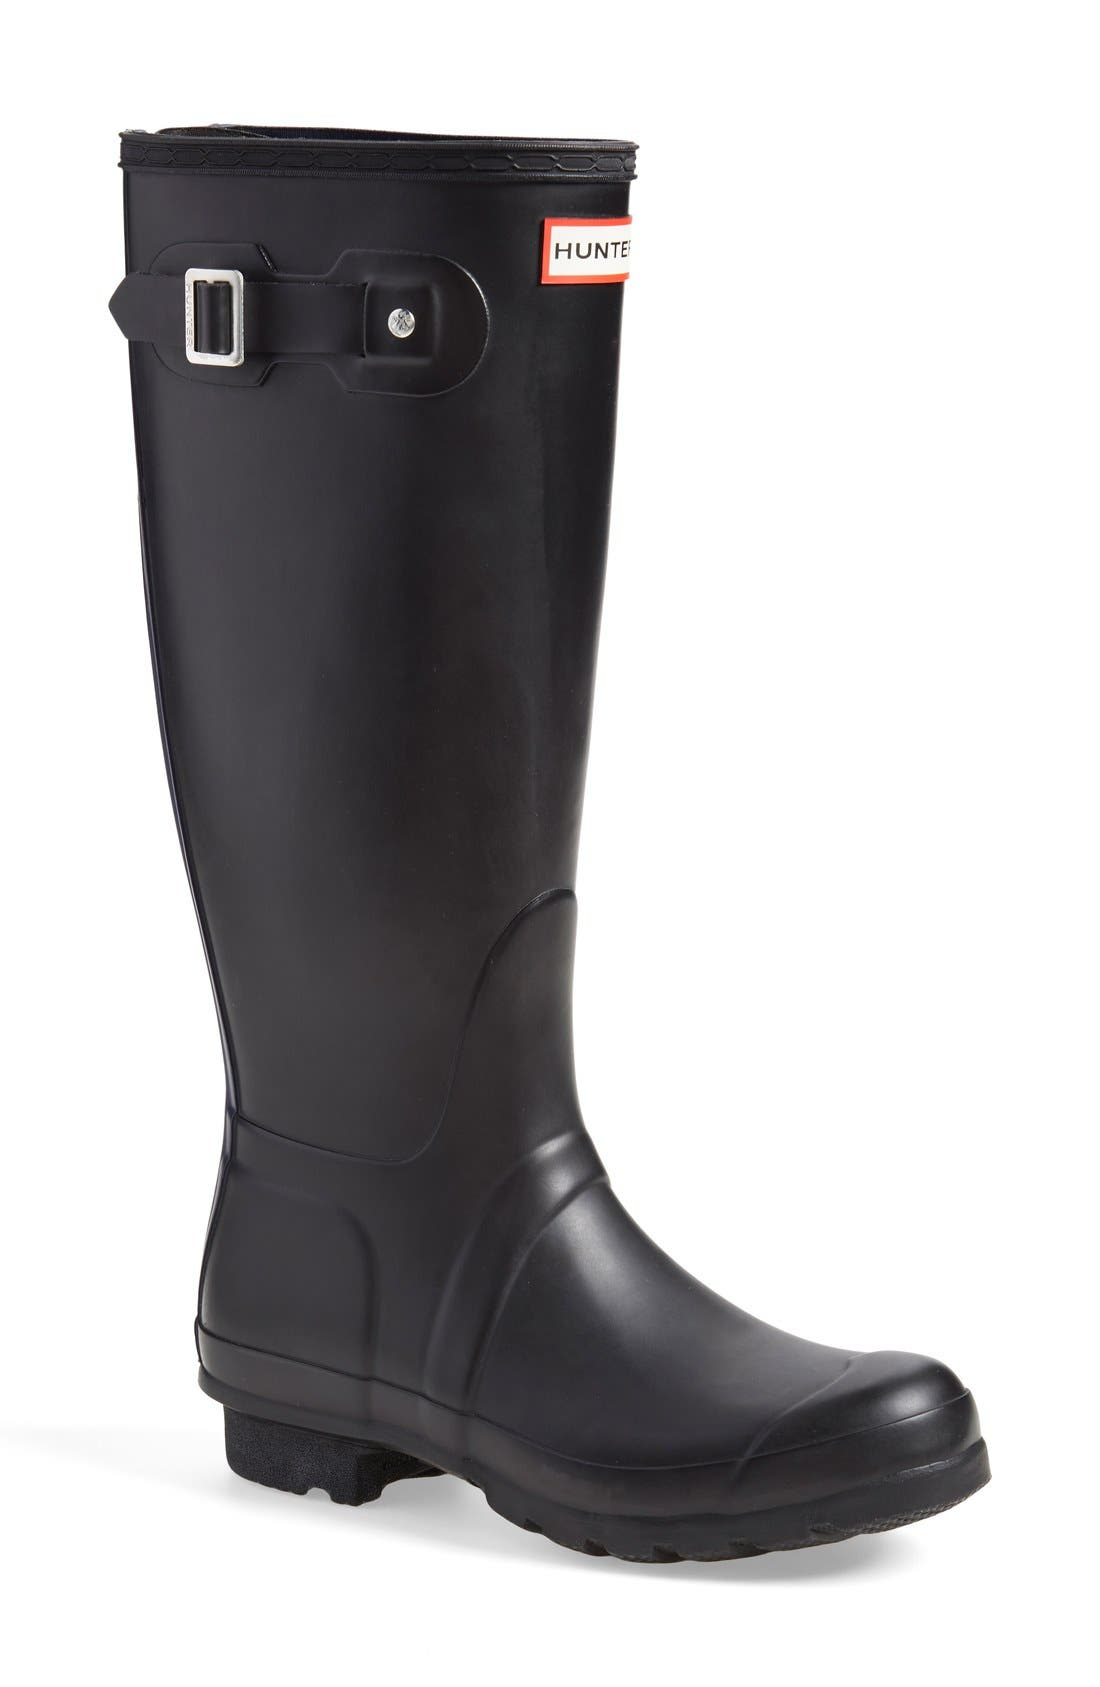 Alternate Image 1 Selected - Hunter 'Tall' Back Zip Rain Boot (Women) (Nordstrom Exclusive)